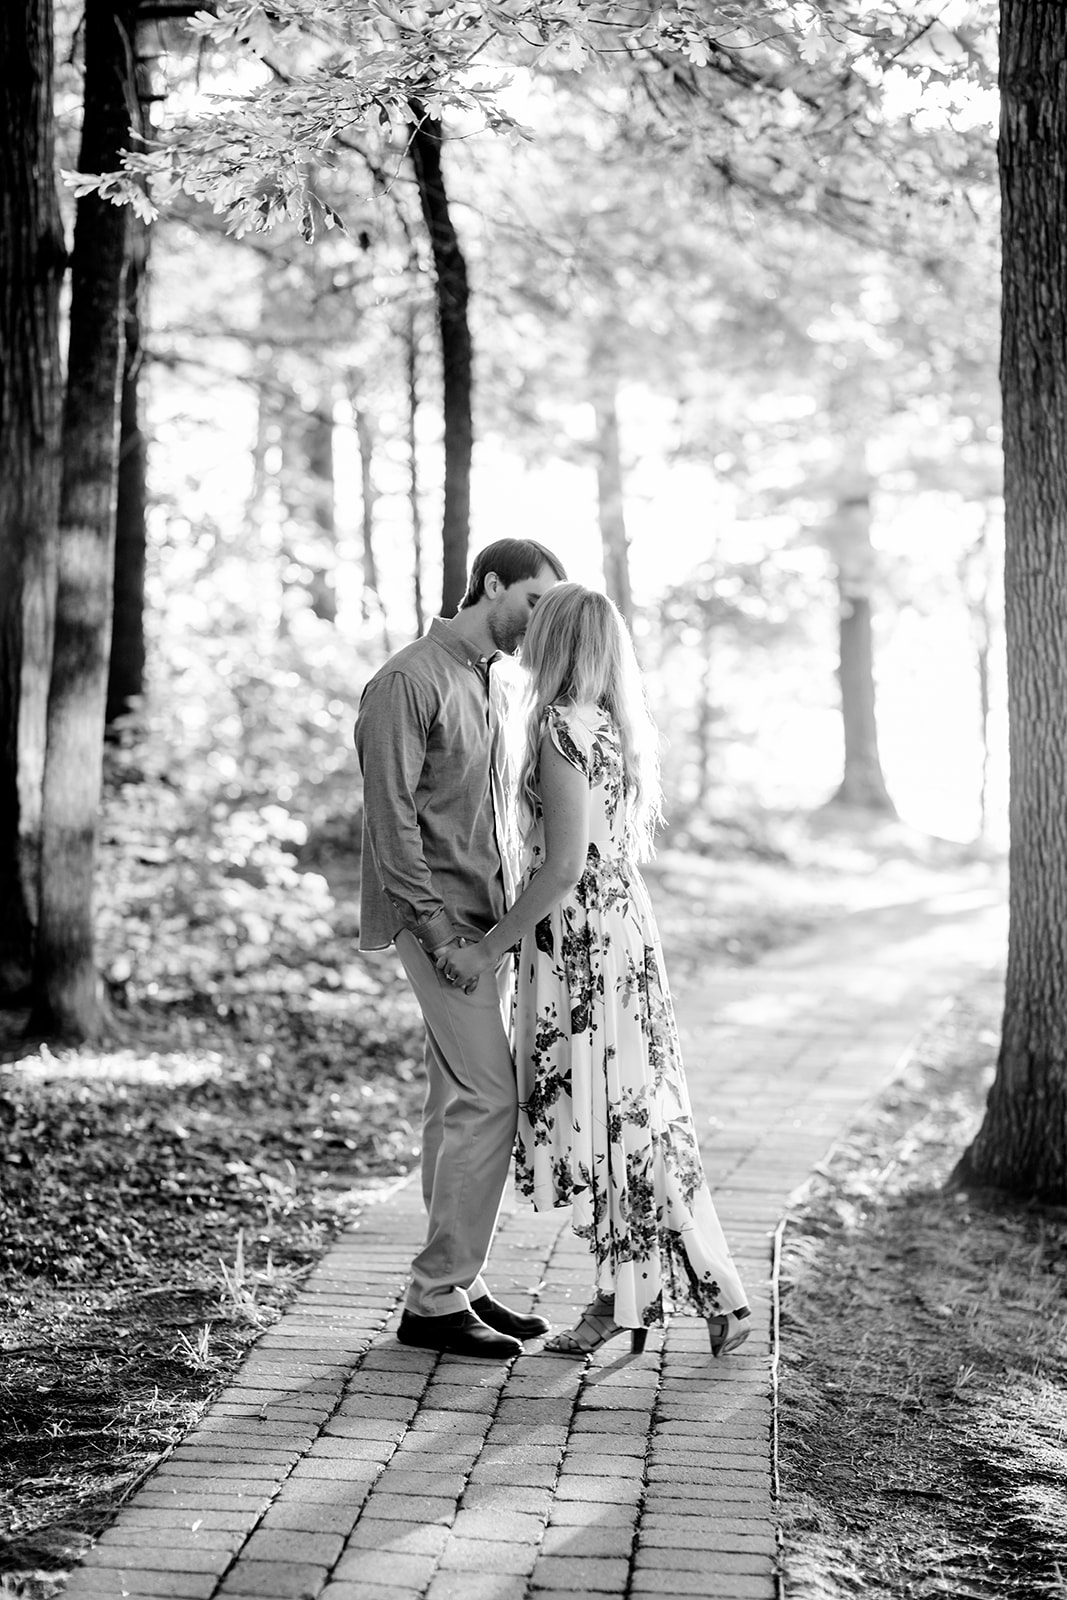 Allie  Nicks Lake Anna Engagement Session - Image Property of www.j-dphoto.com